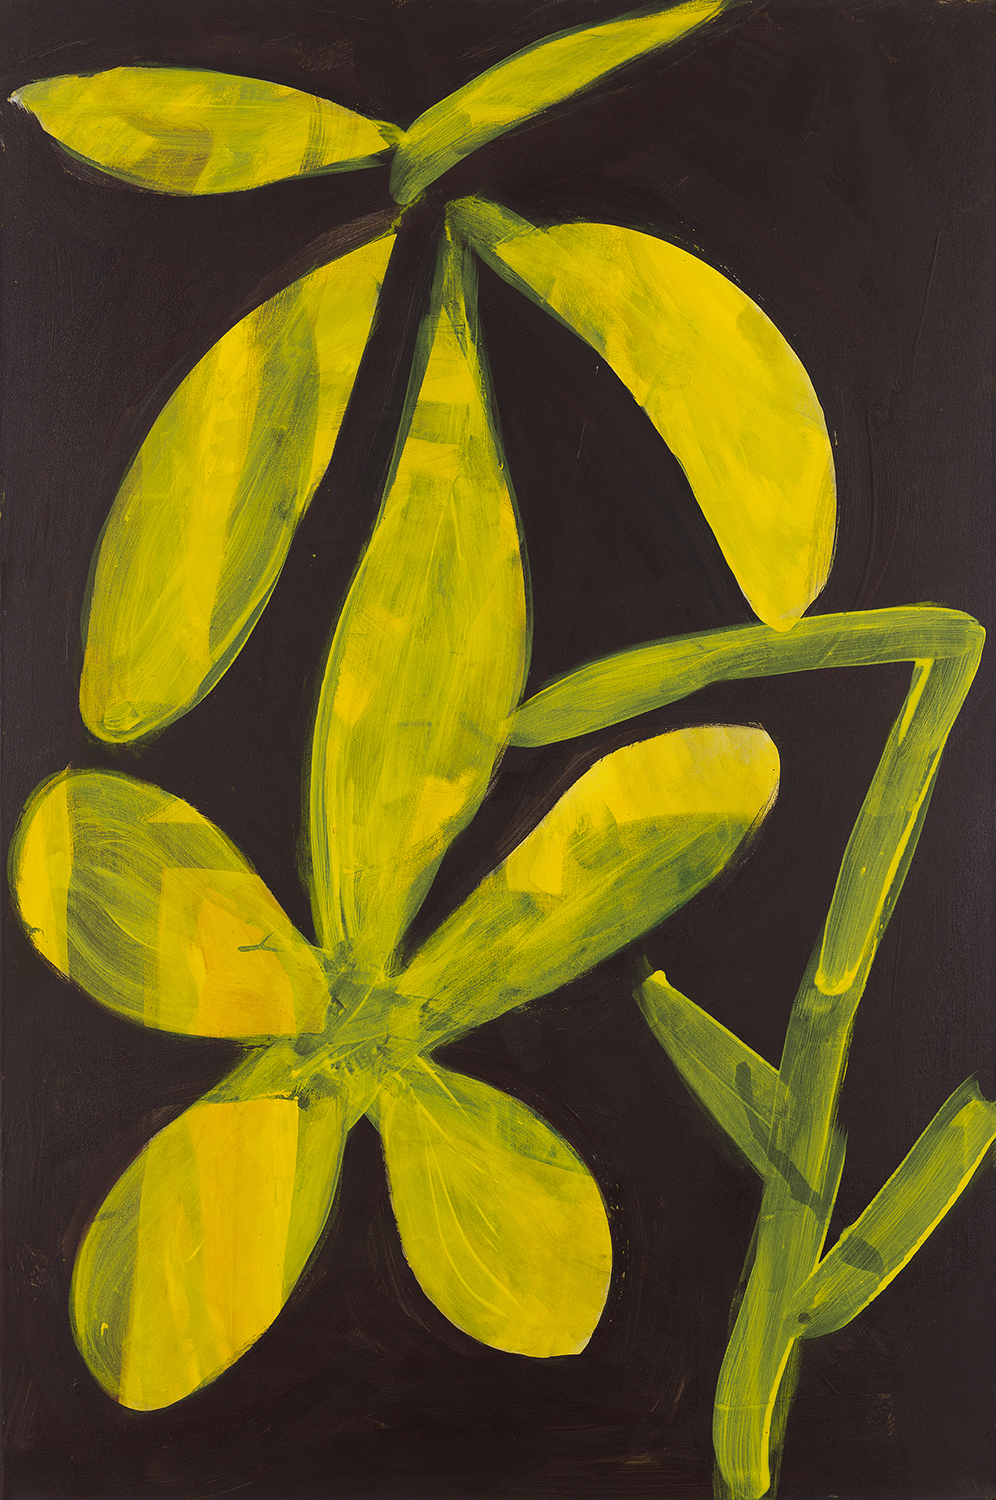 flower 7, yellow/dark 2015